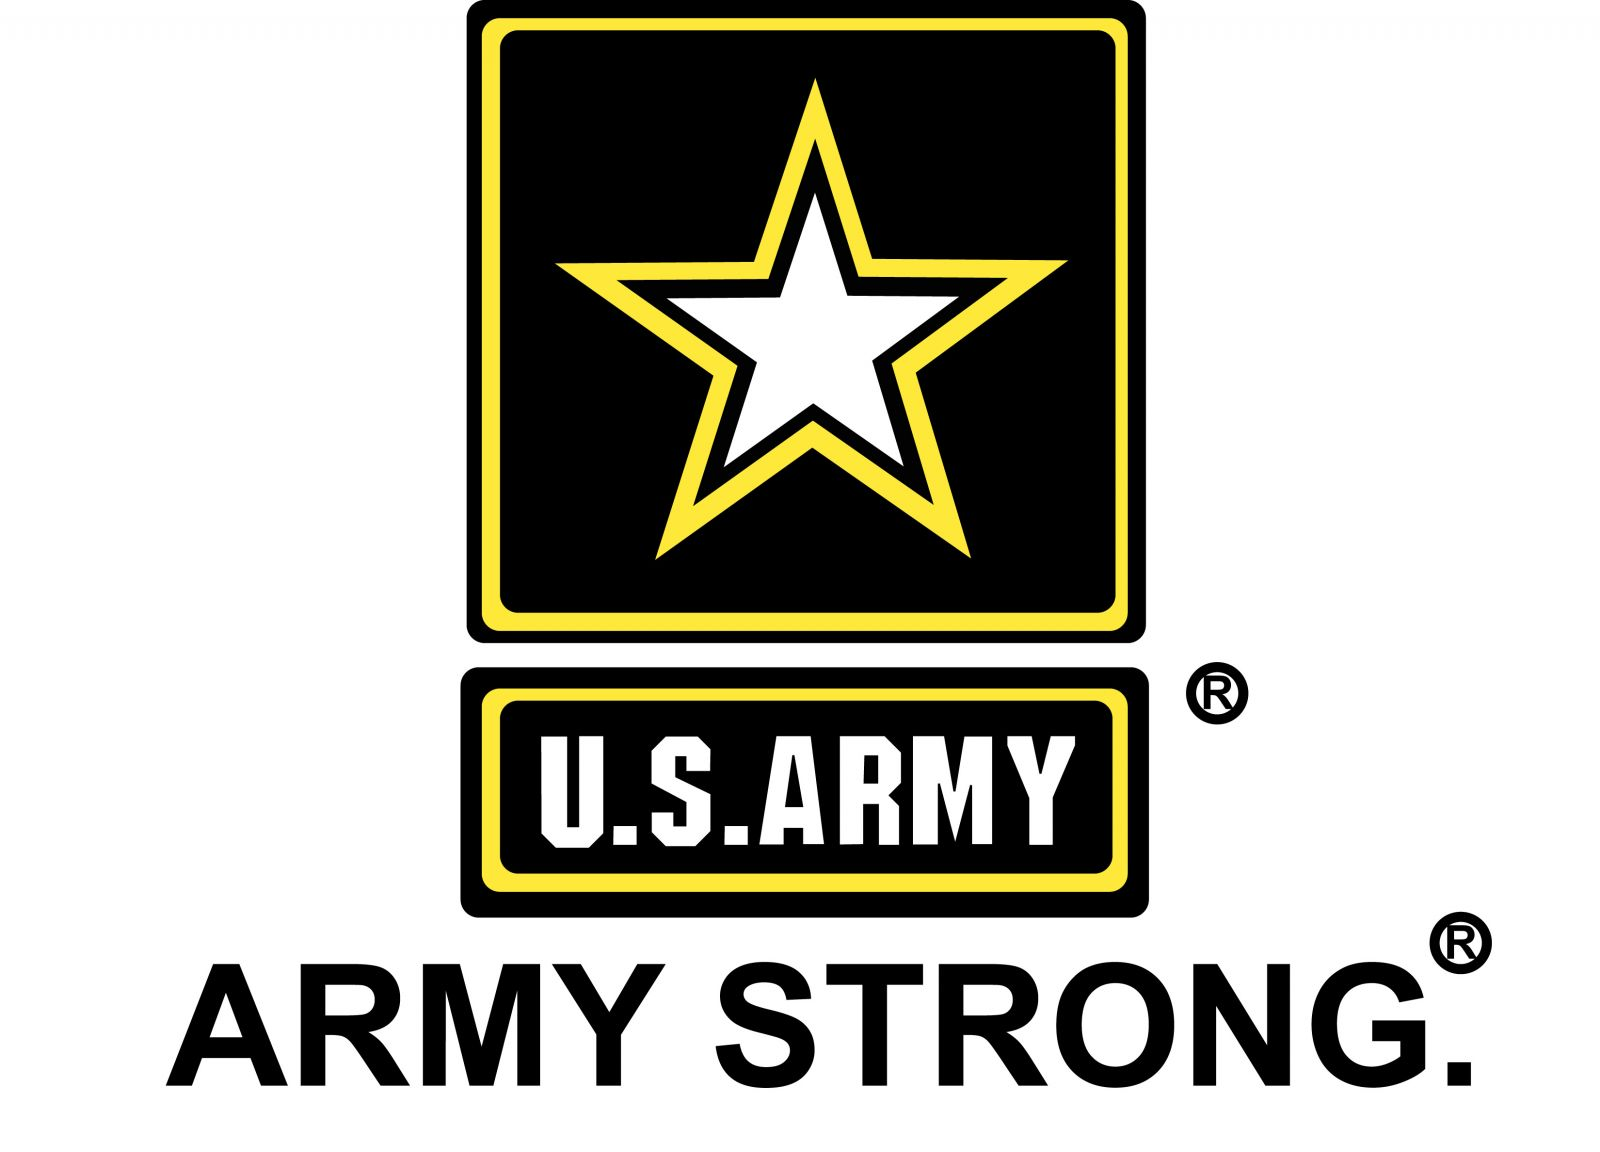 18 U.S. Army Hat Vector Icon Images - Army Logo Vector, WW2 ...